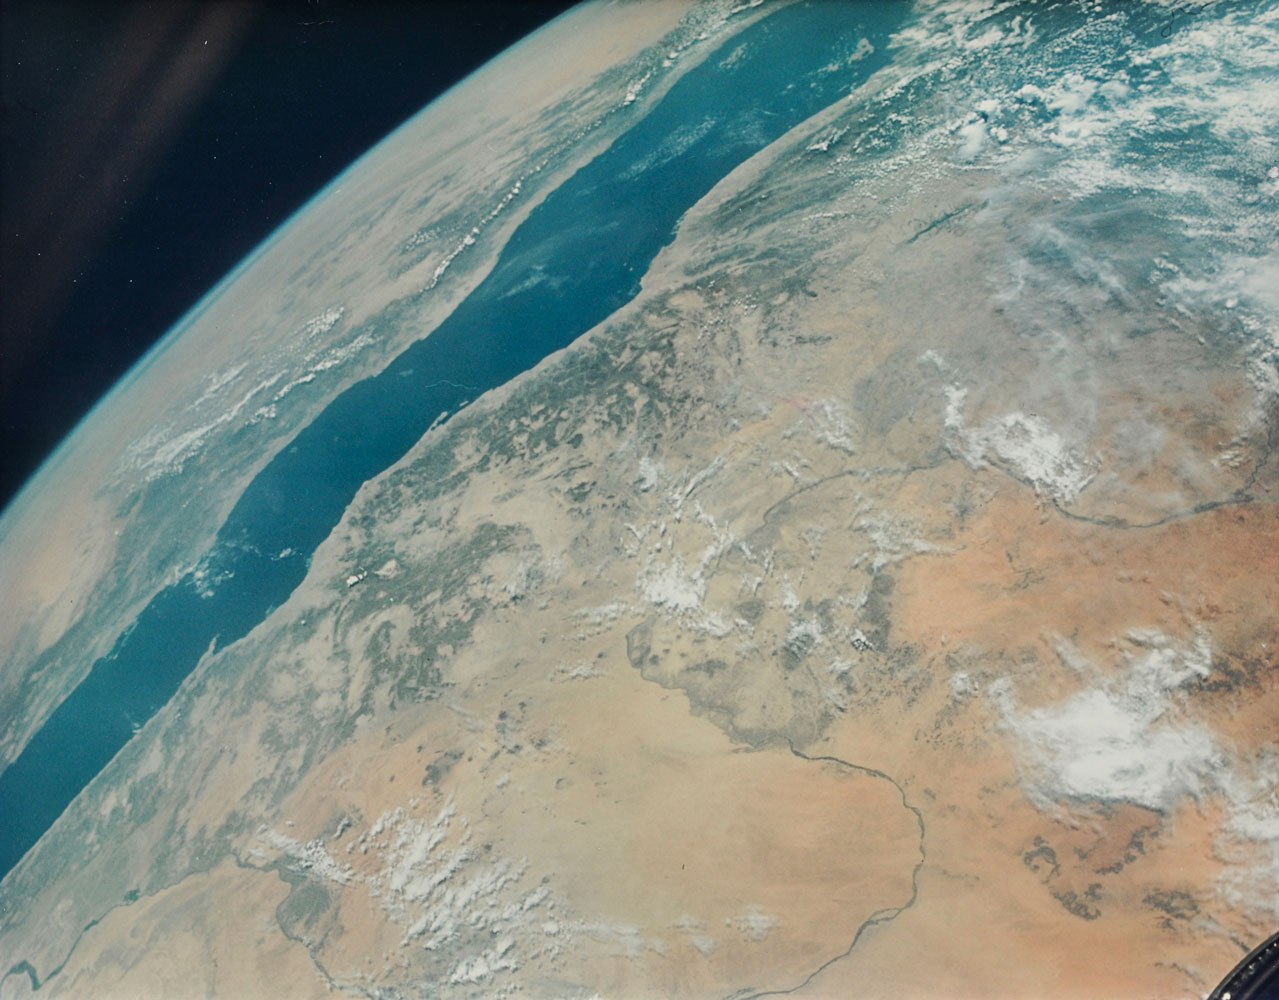 Richard Gordon (American, b. 1929) The Nile River and the Red Sea from Space, Gemini 11, September 1966. Large-format vintage chromogenic print on fiber-based Kodak paper with 'A Kodak Paper' watermark on the verso